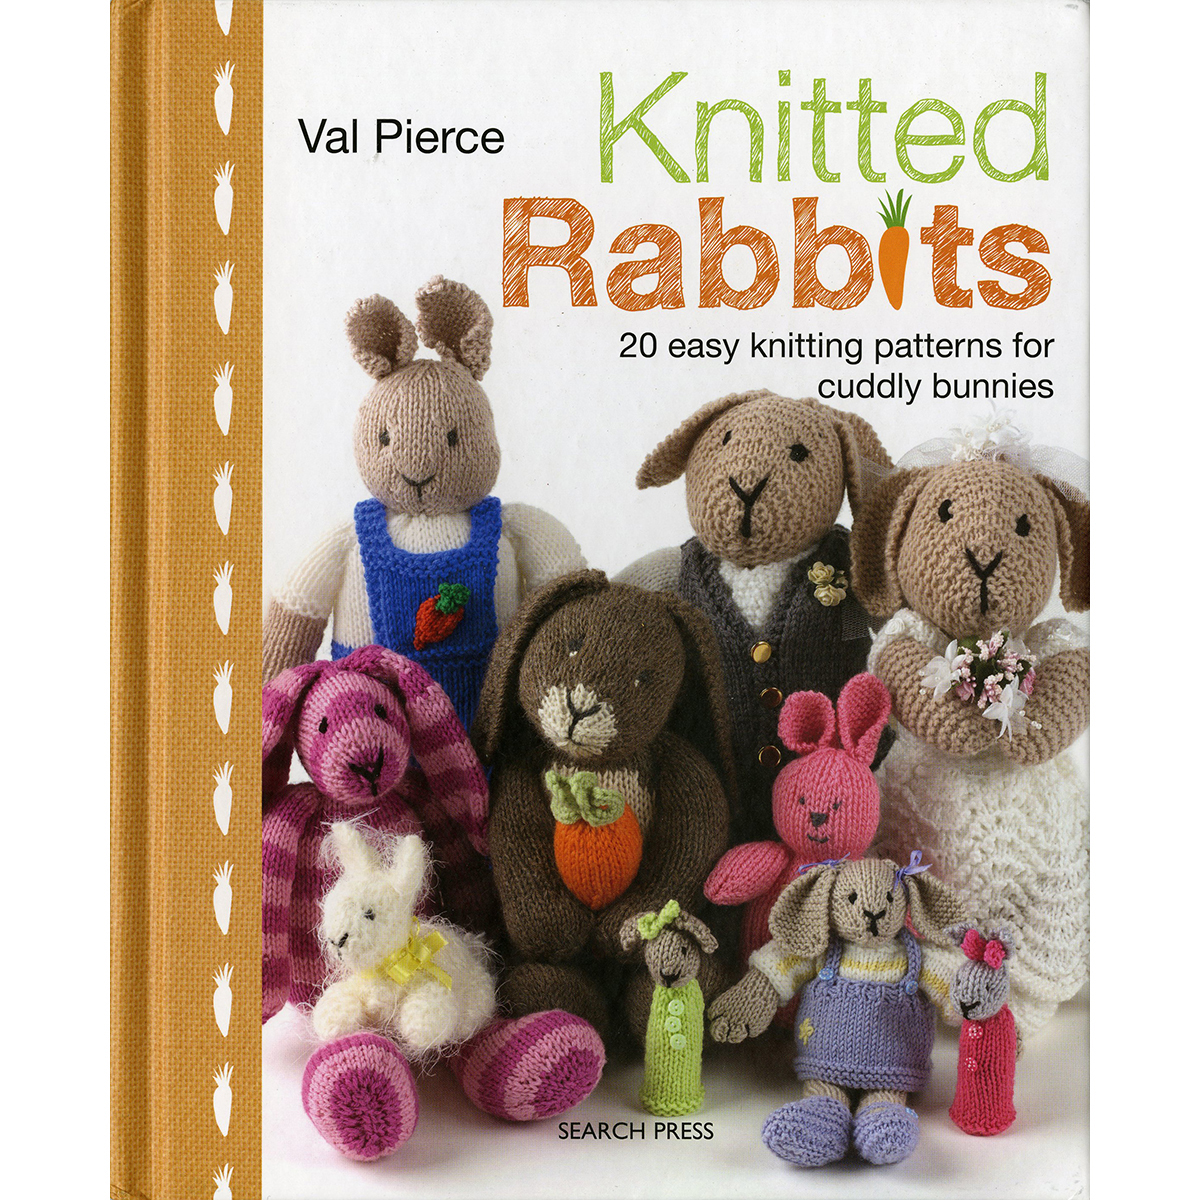 Search Press Books Knitted Rabbits